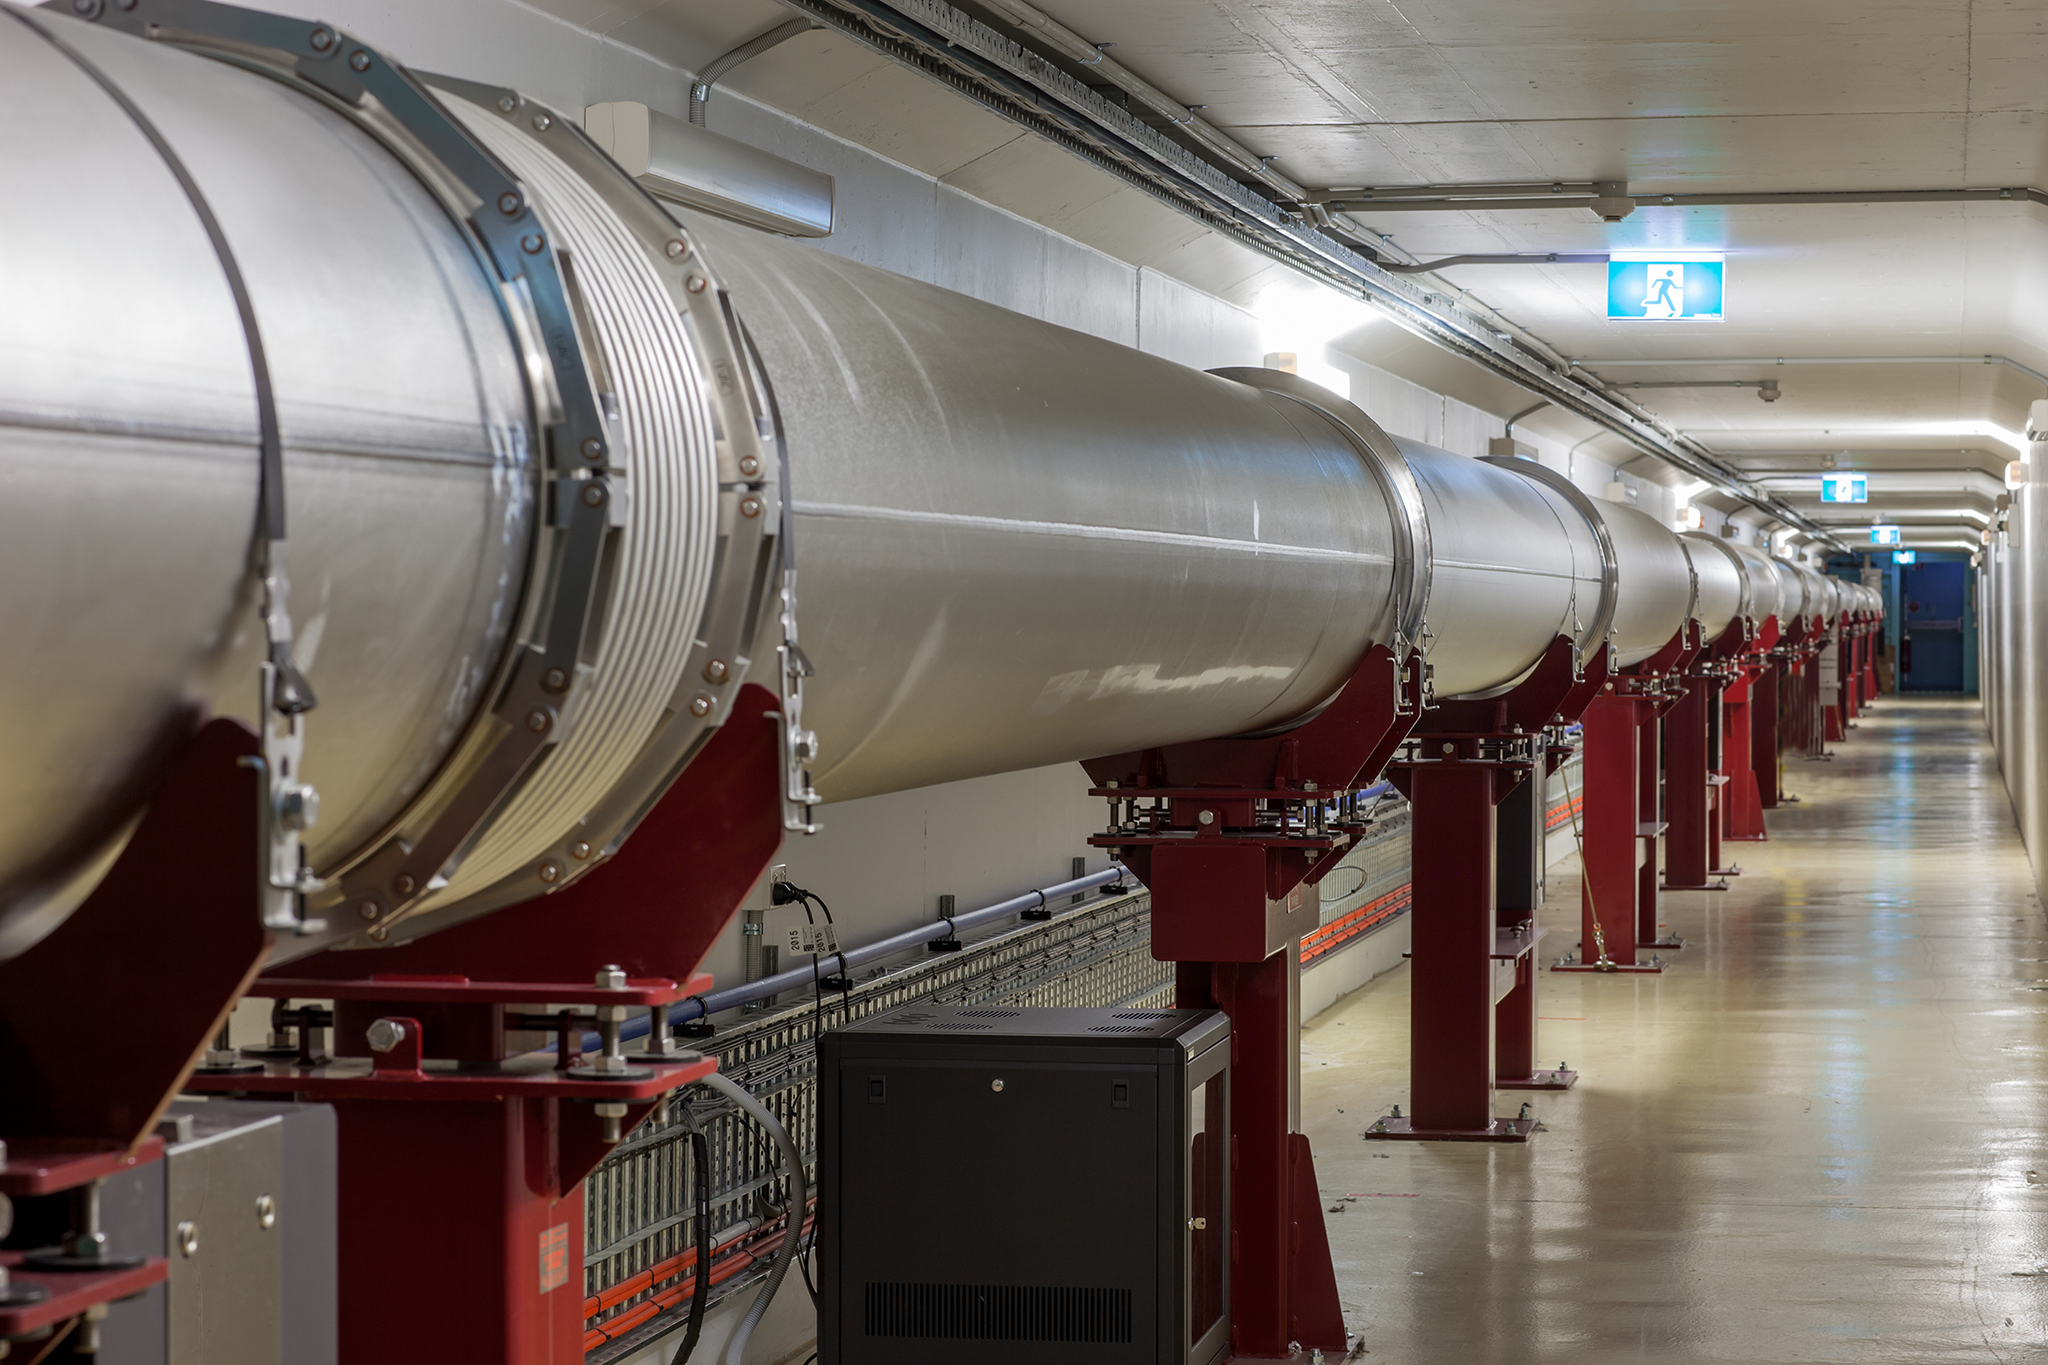 Beamtime guide - Imaging and Medical